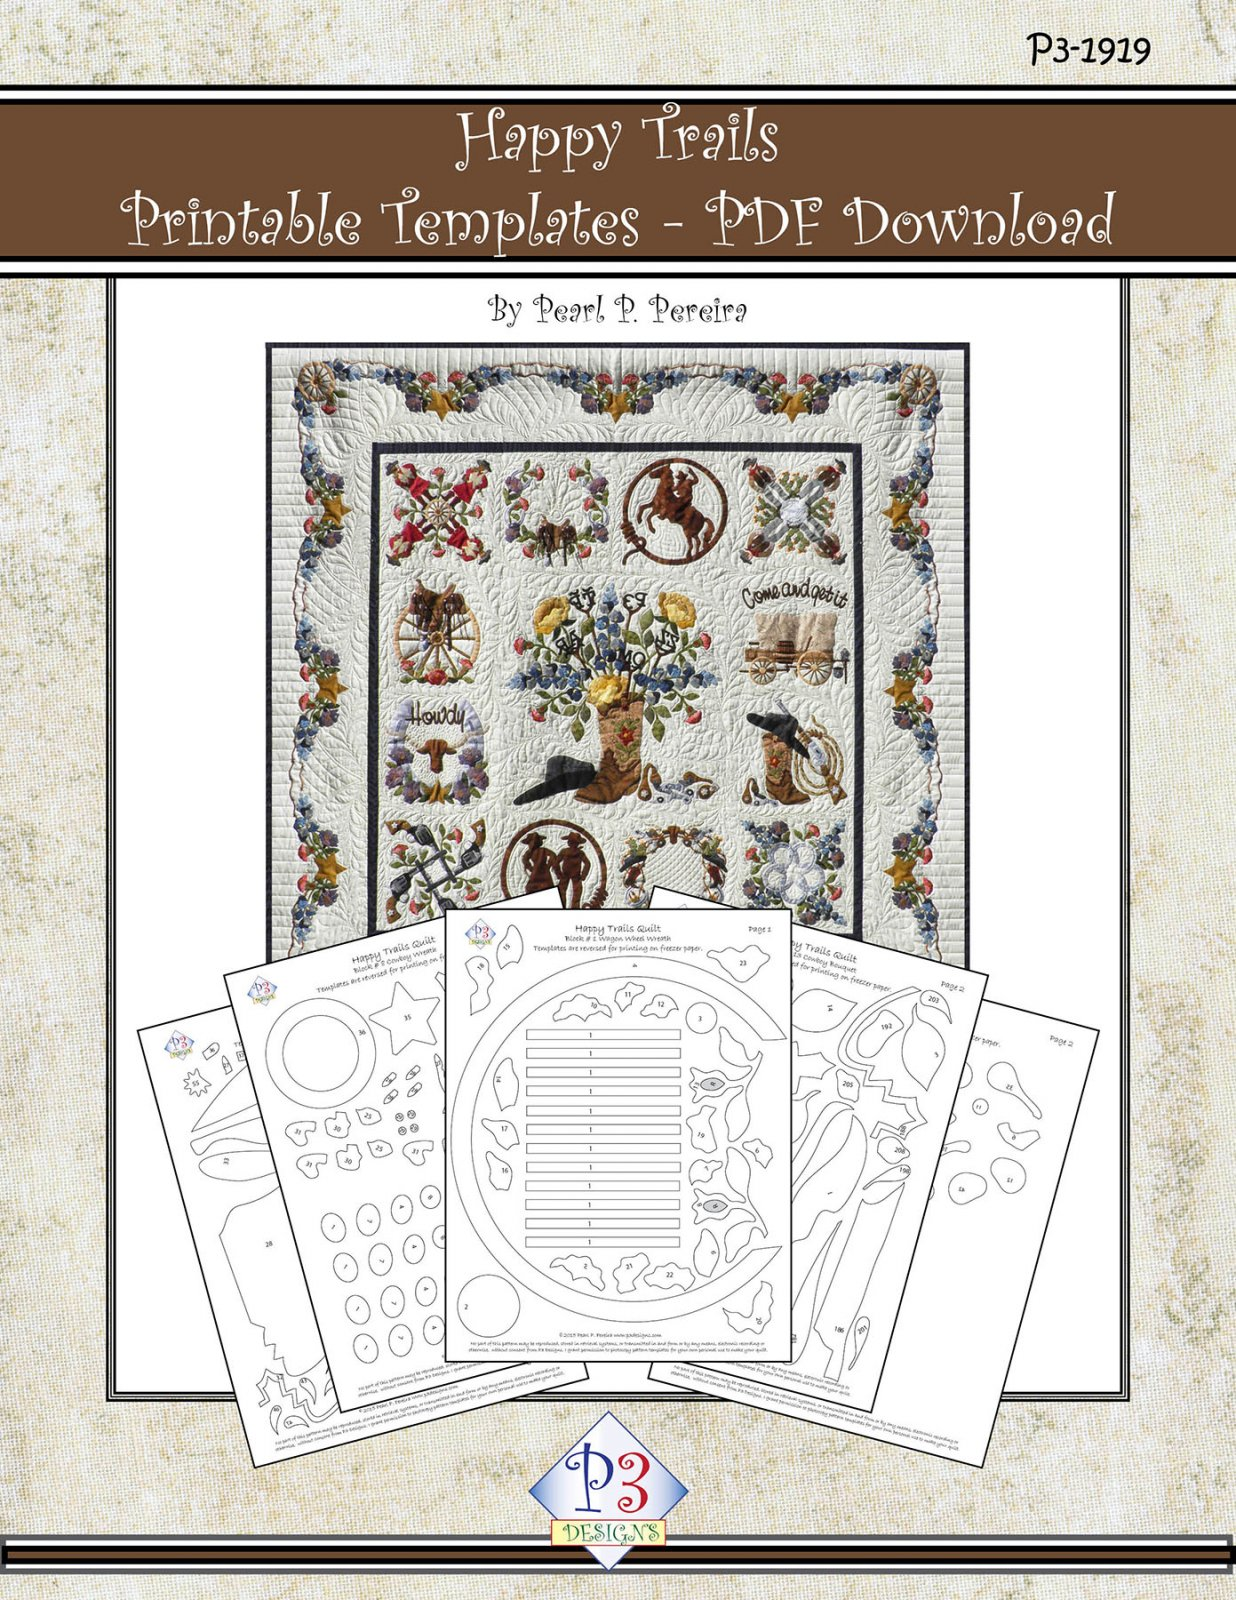 P3-1919 Happy Trails Printable Templates - PDF Download Only